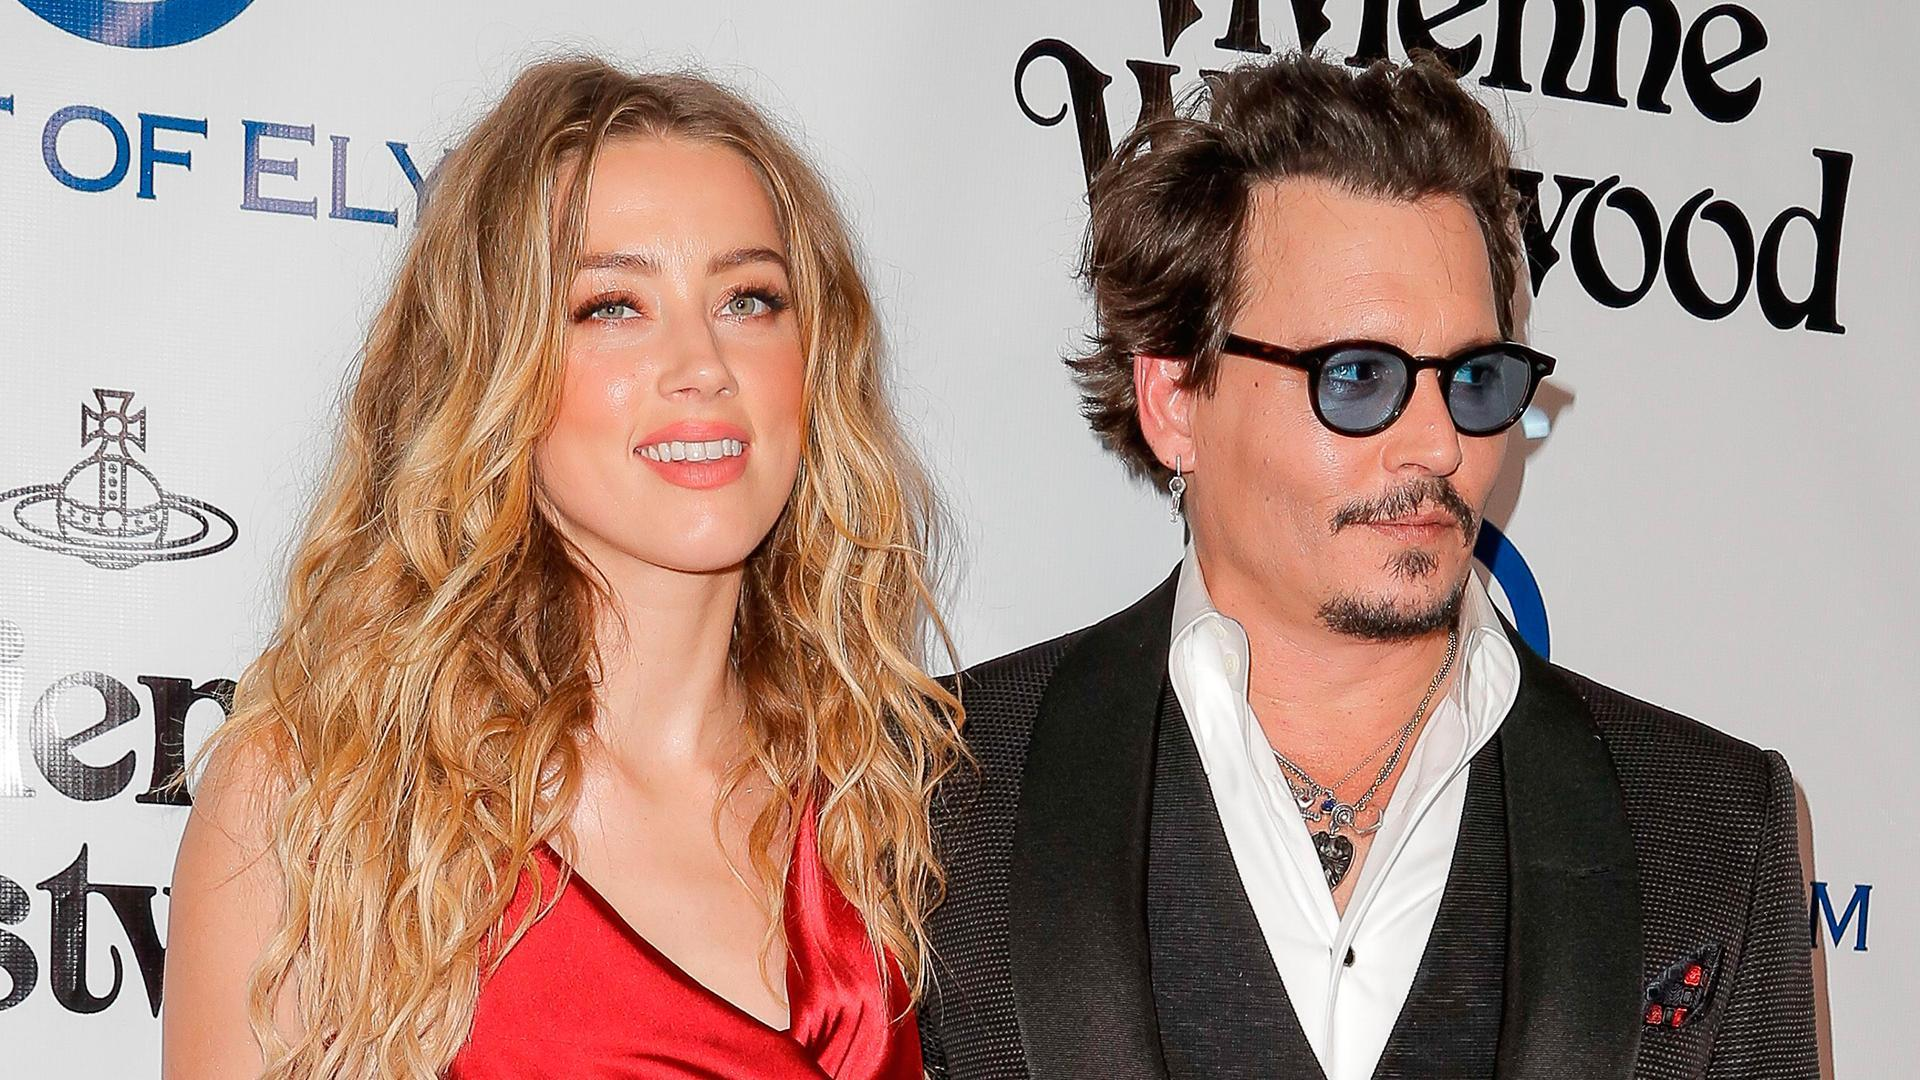 Amber Heard Says Johnny Depp Is 'Scary,' Struggles with Drug and Alcohol Abuse